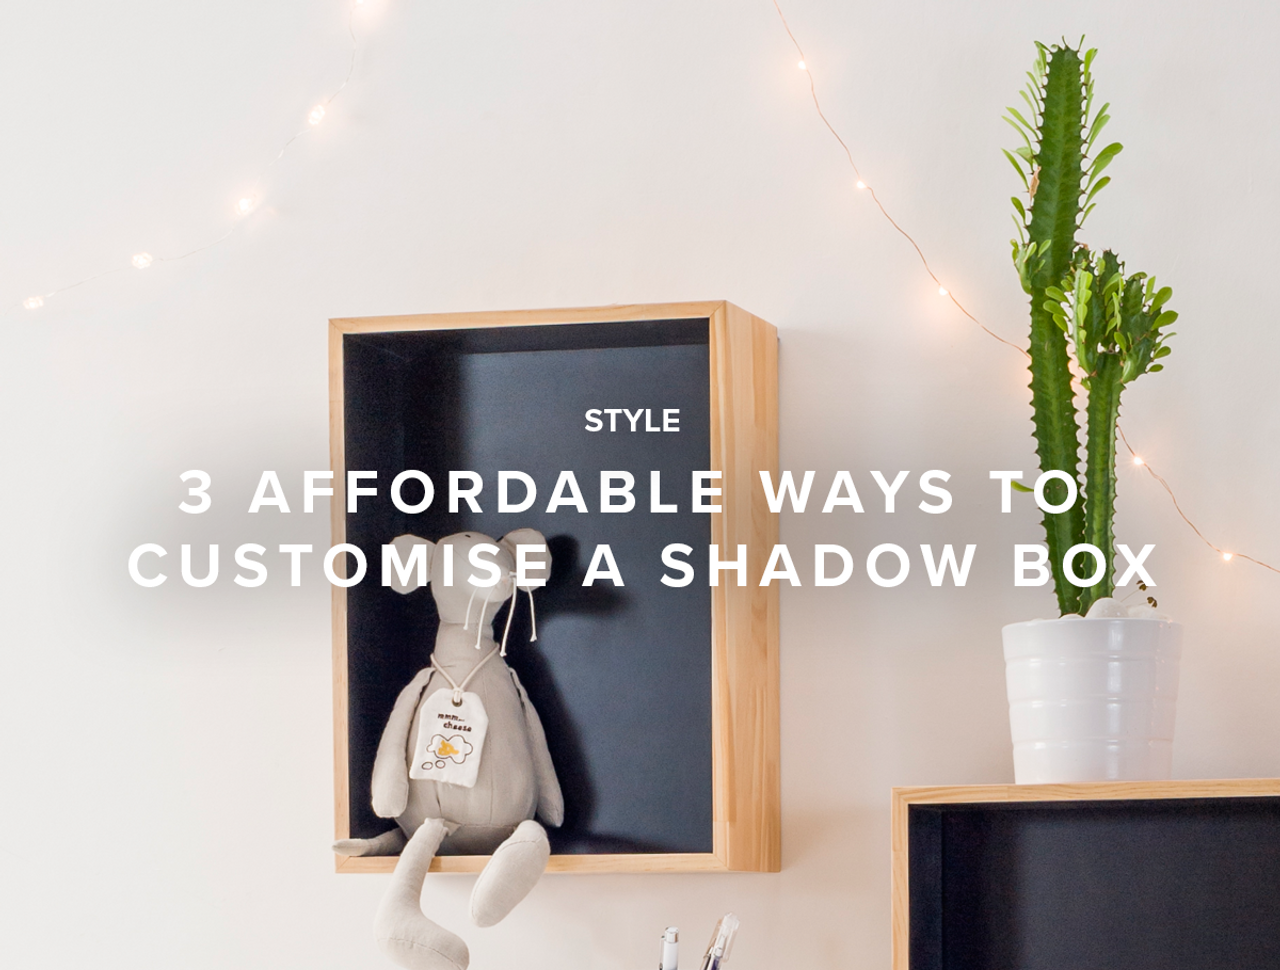 3 Affordable Ways to Customise a Shadow Box